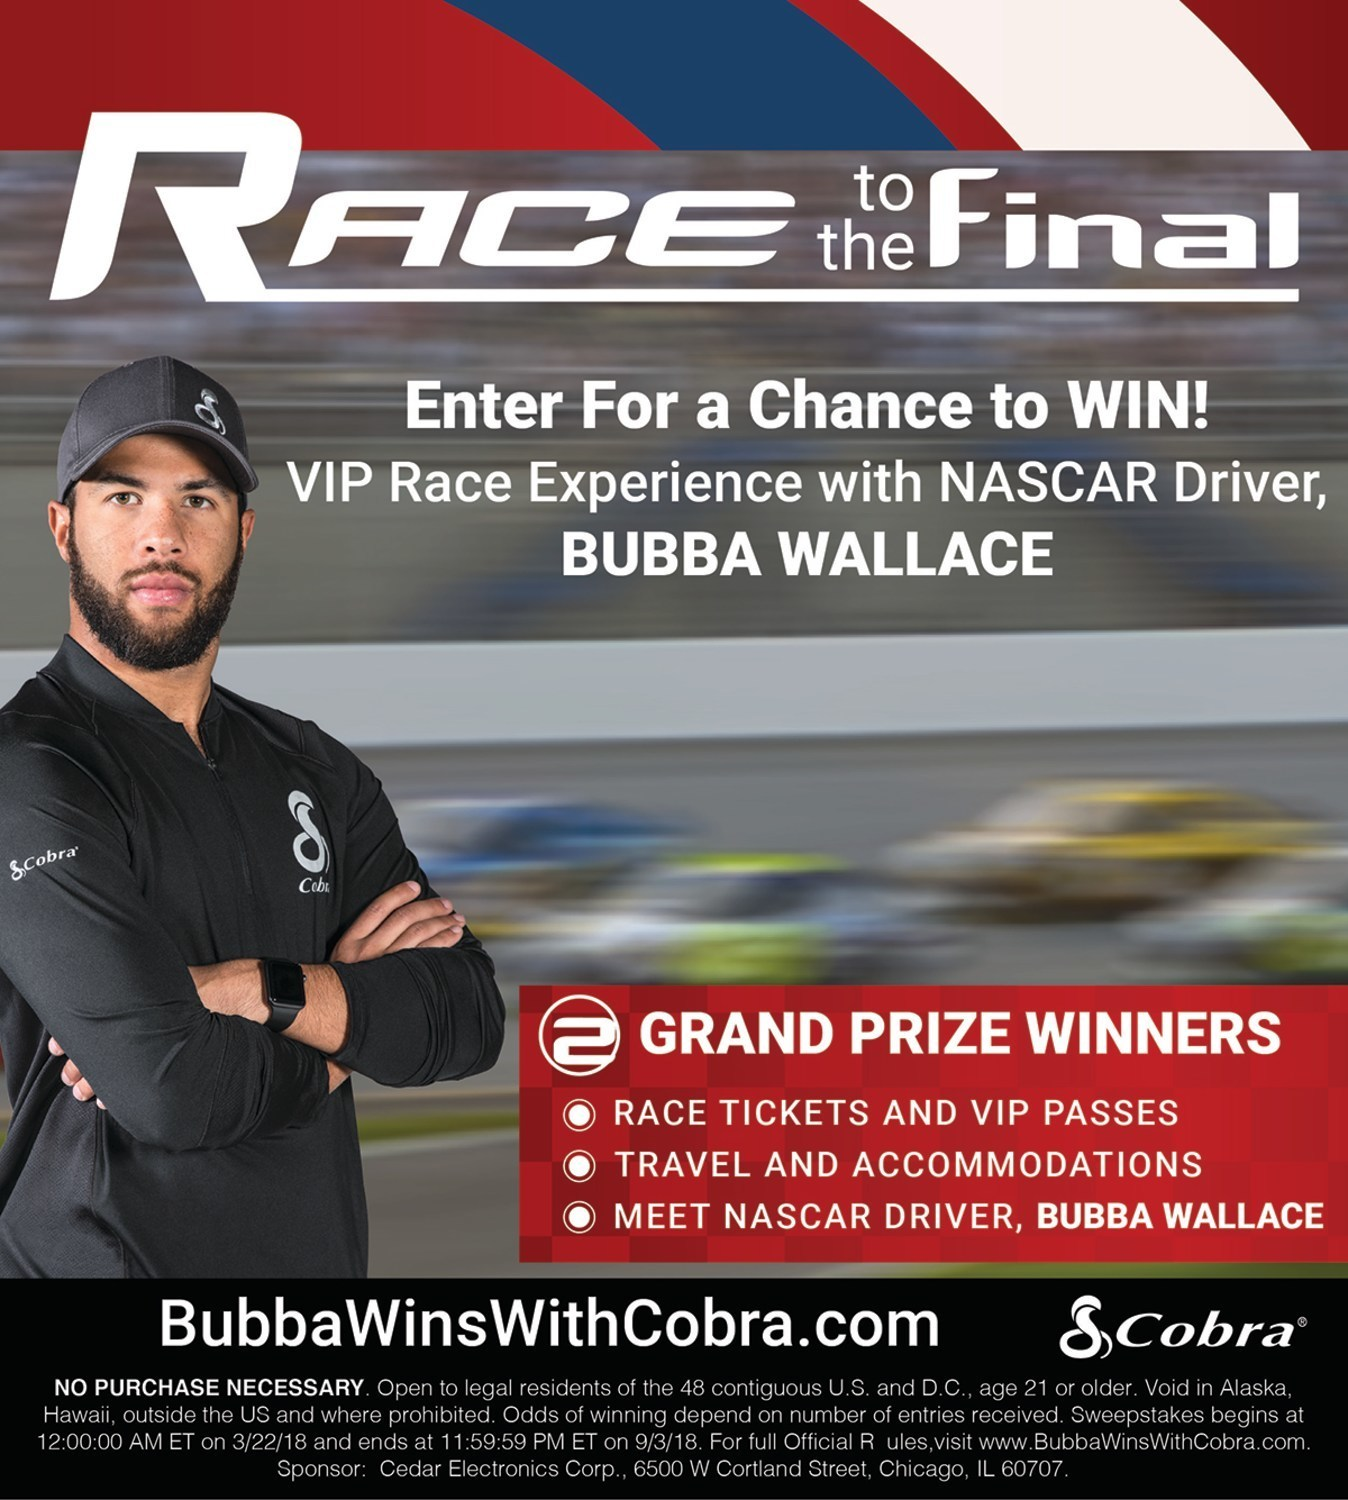 Cobra 'Race to the Final' Sweepstakes with Bubba Wallace